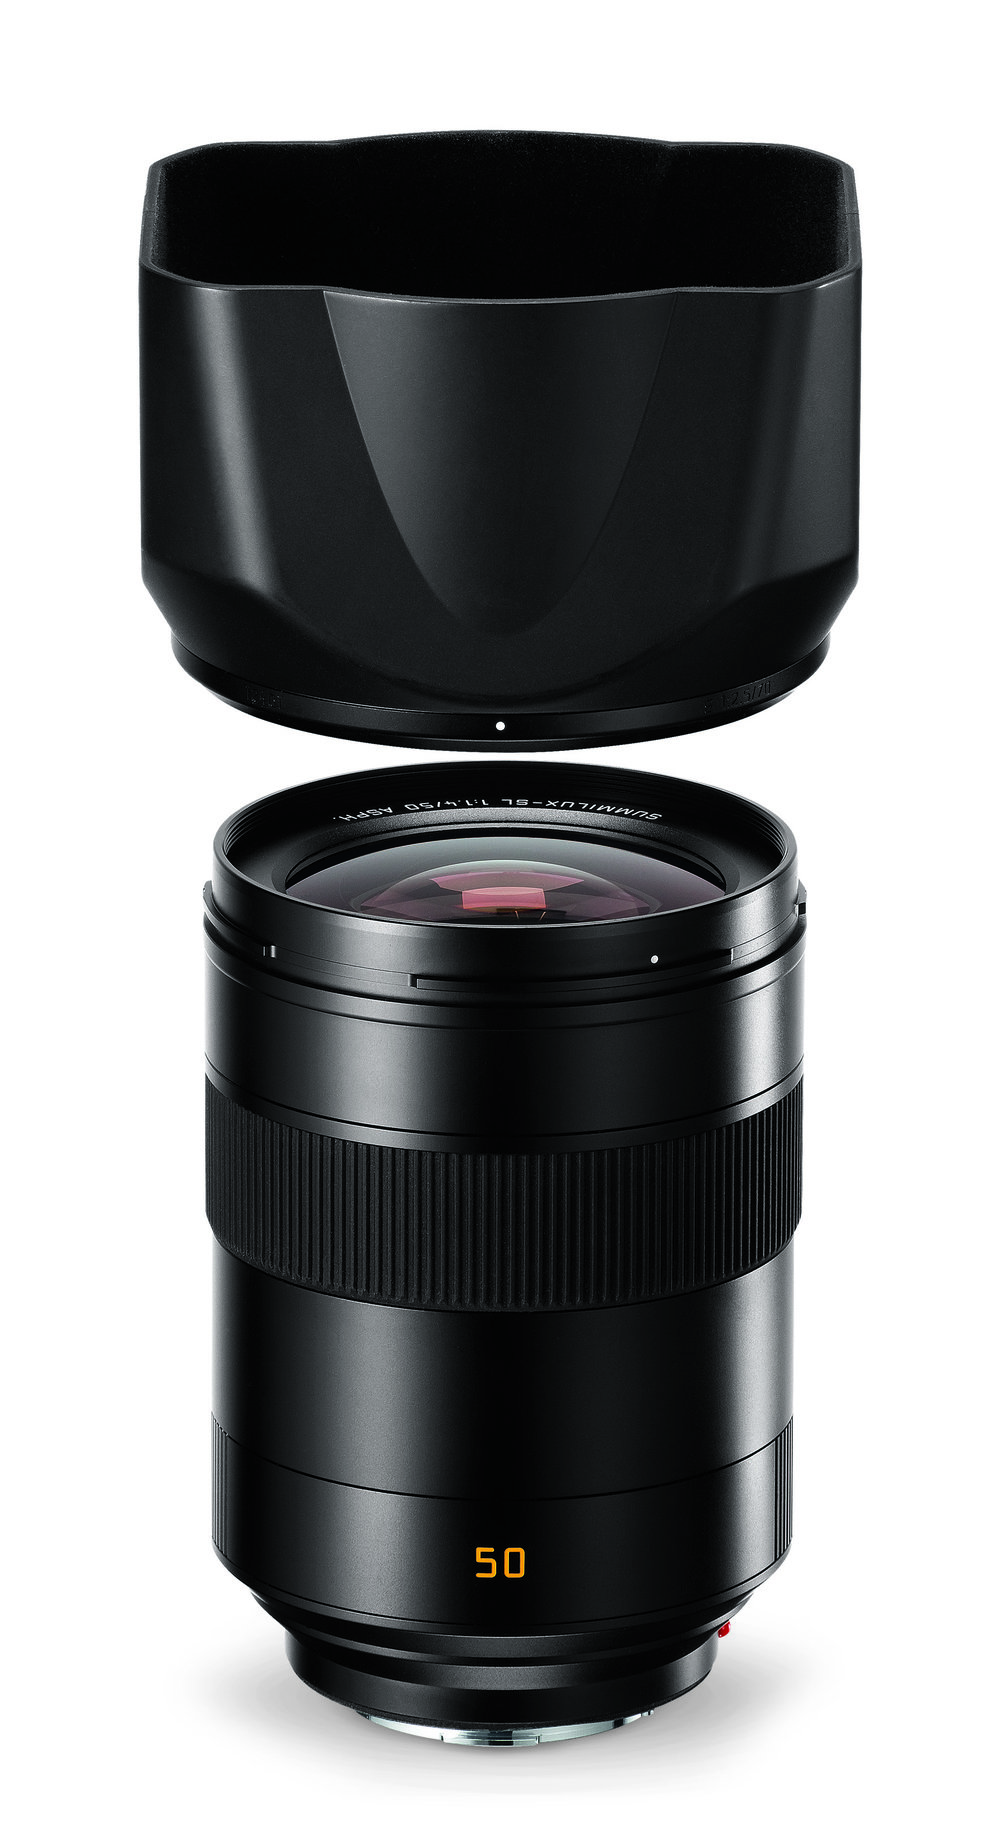 This is a large lens for a 50mm prime, especially when tricked out with the hood